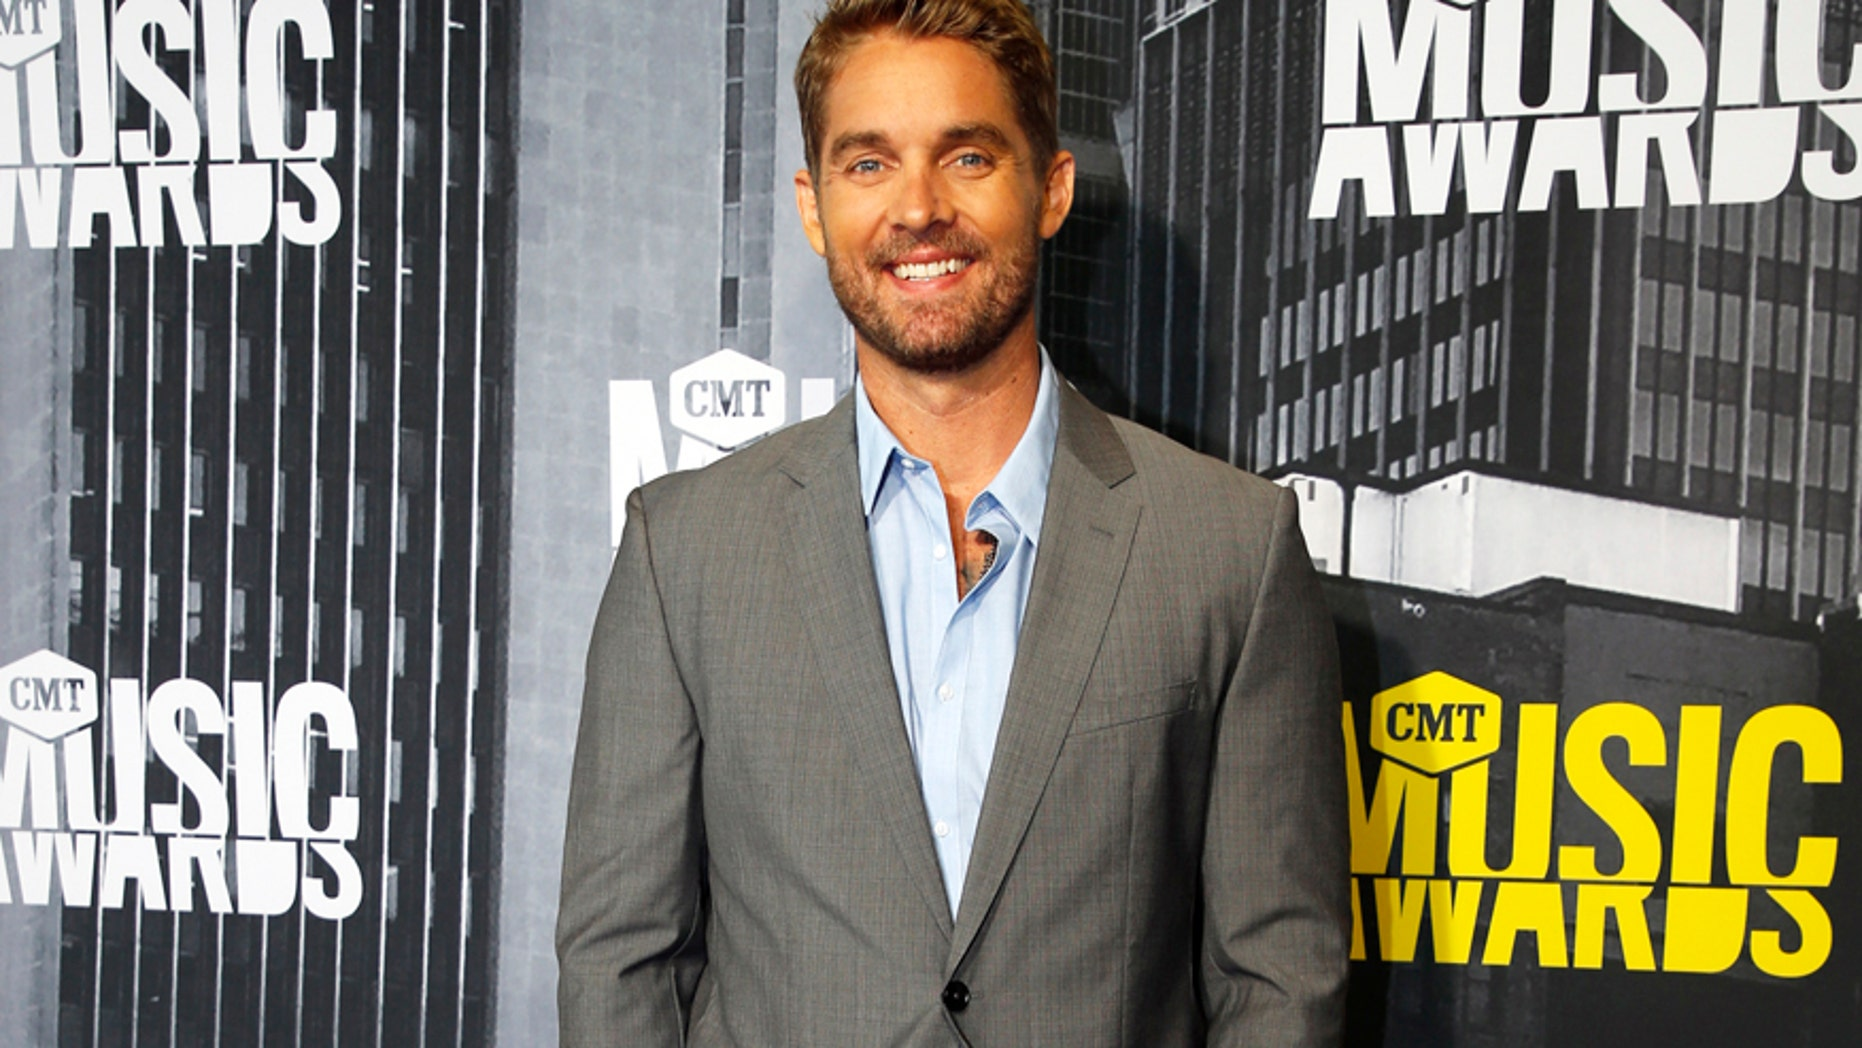 Brett Young arrives at the 2017 CMT Music Awards in Nashville, Tennessee, on June 7, 2017.